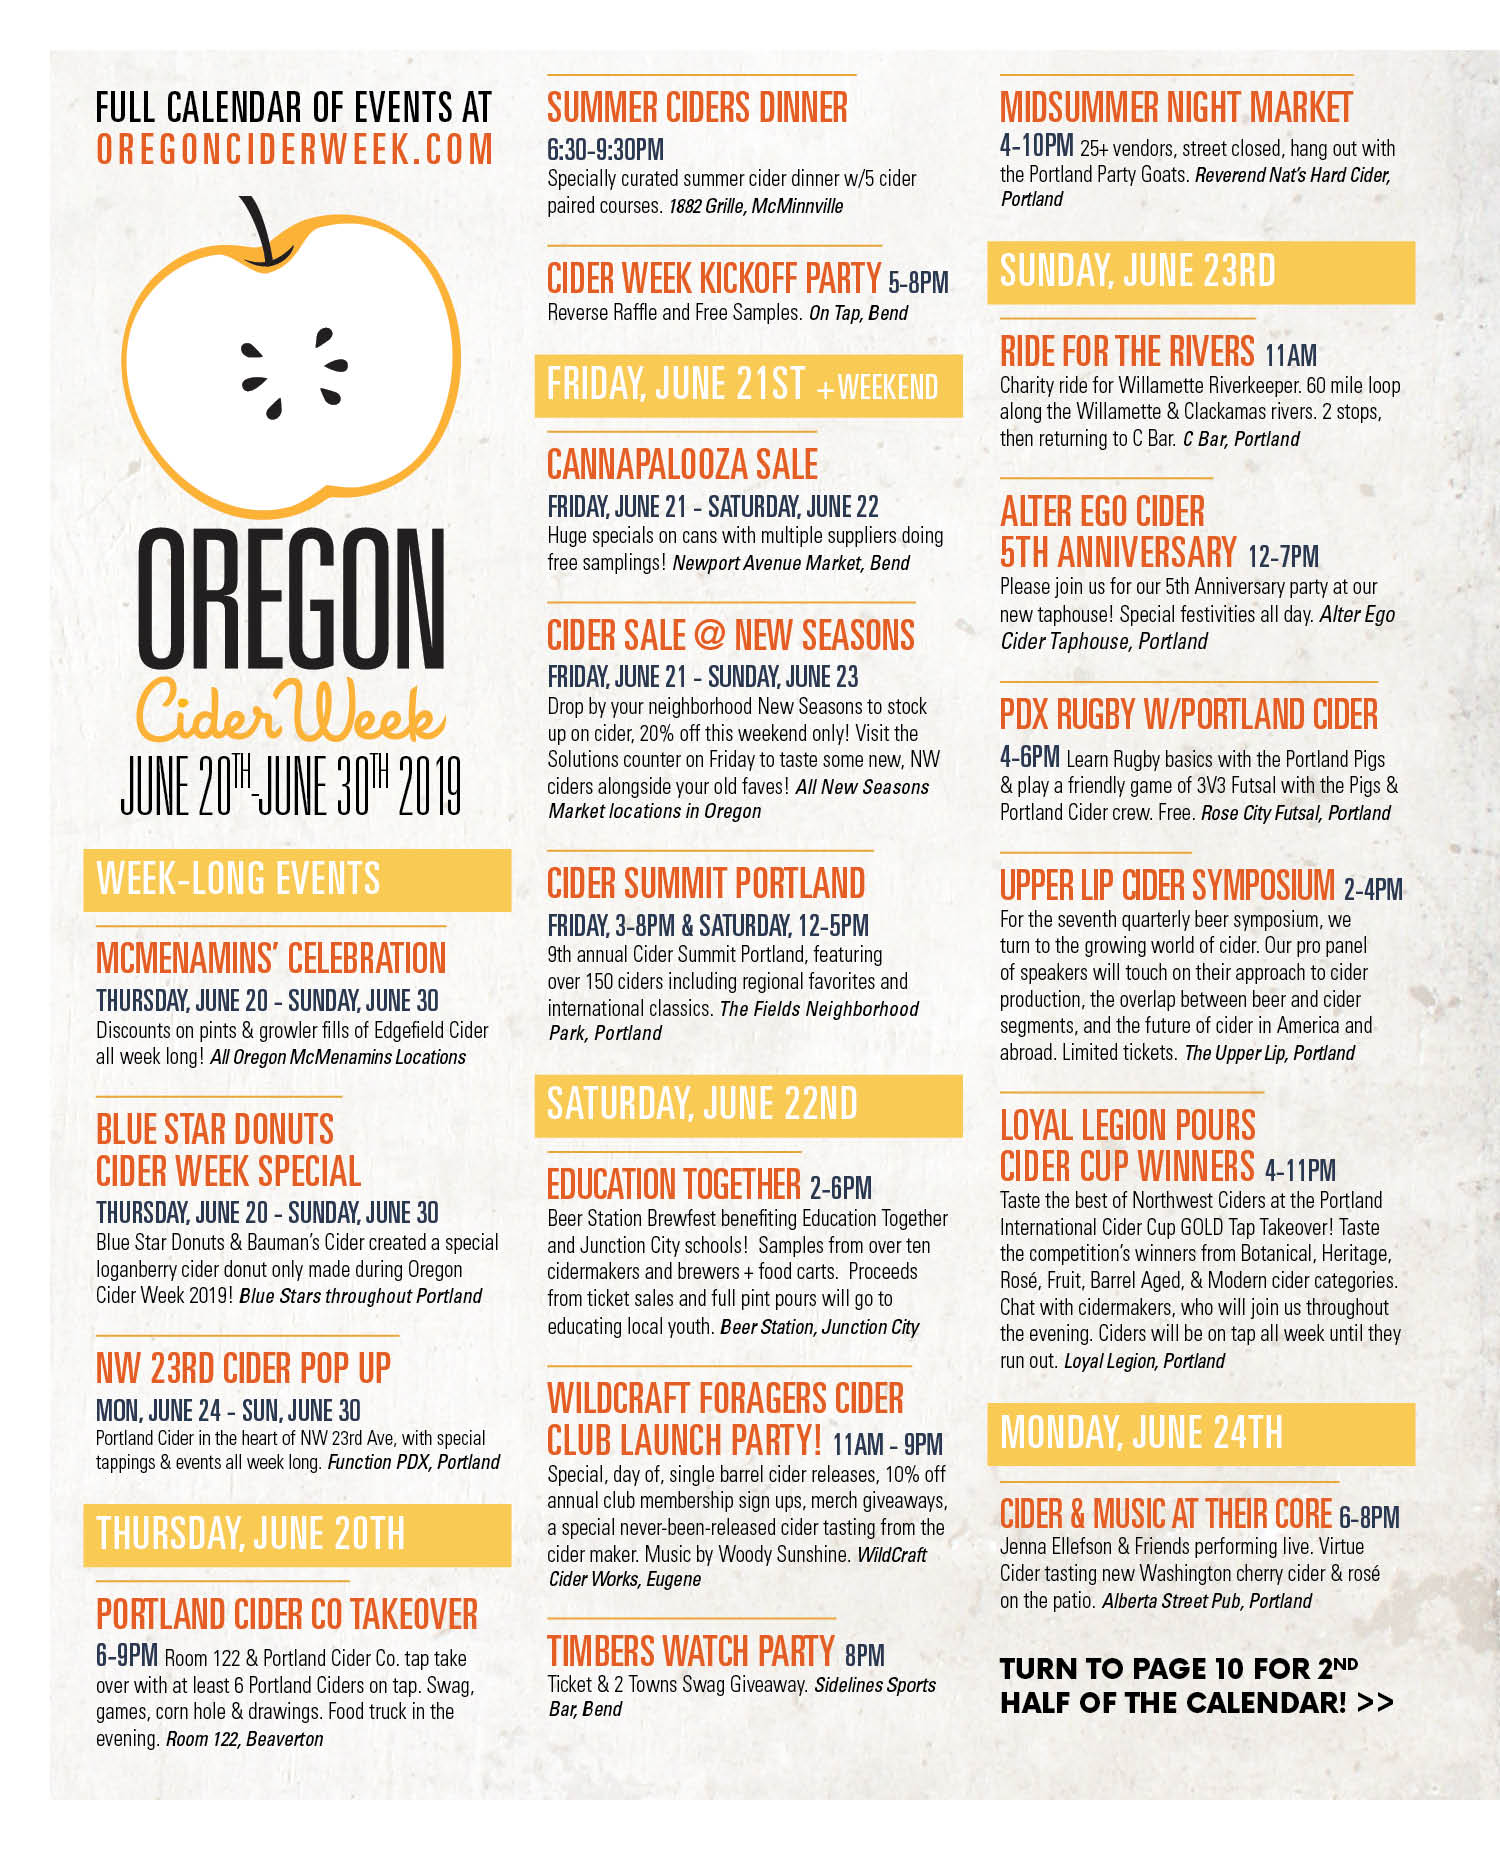 2019 NWCA Oregon Cider Week Calendar of Events Page 1